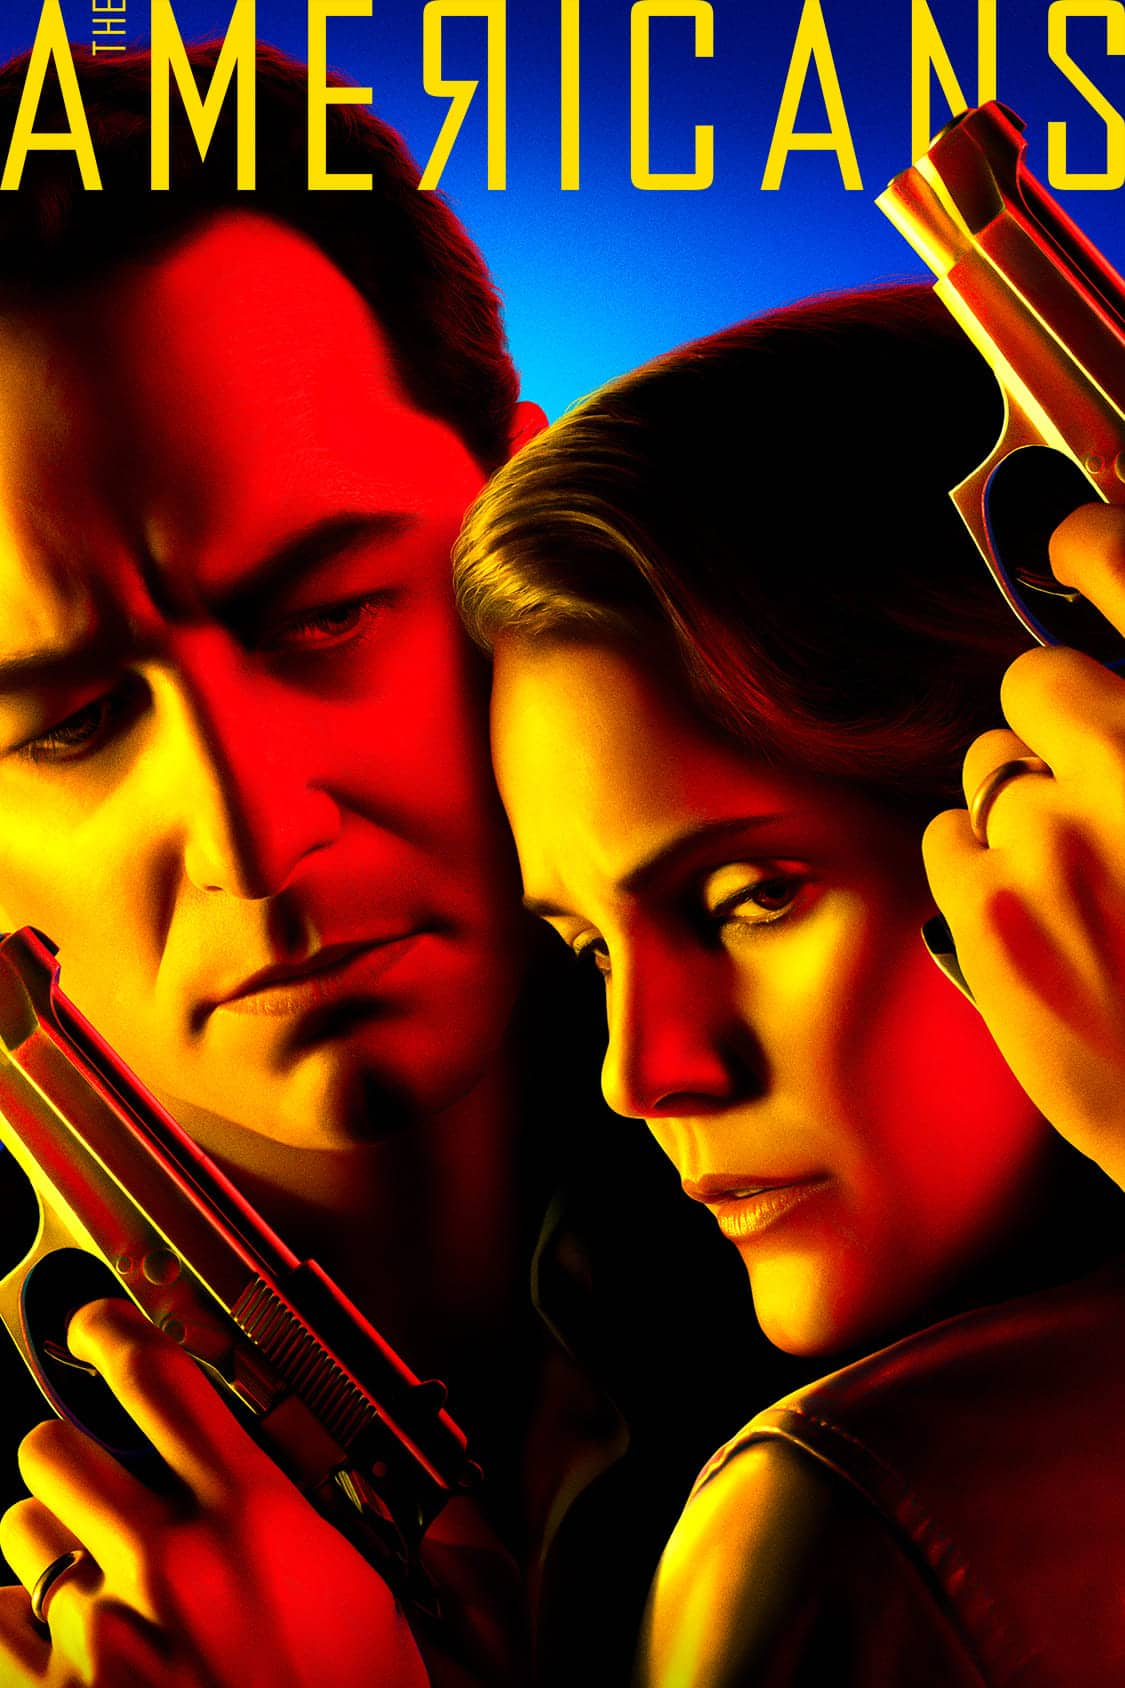 The Americans, 2013